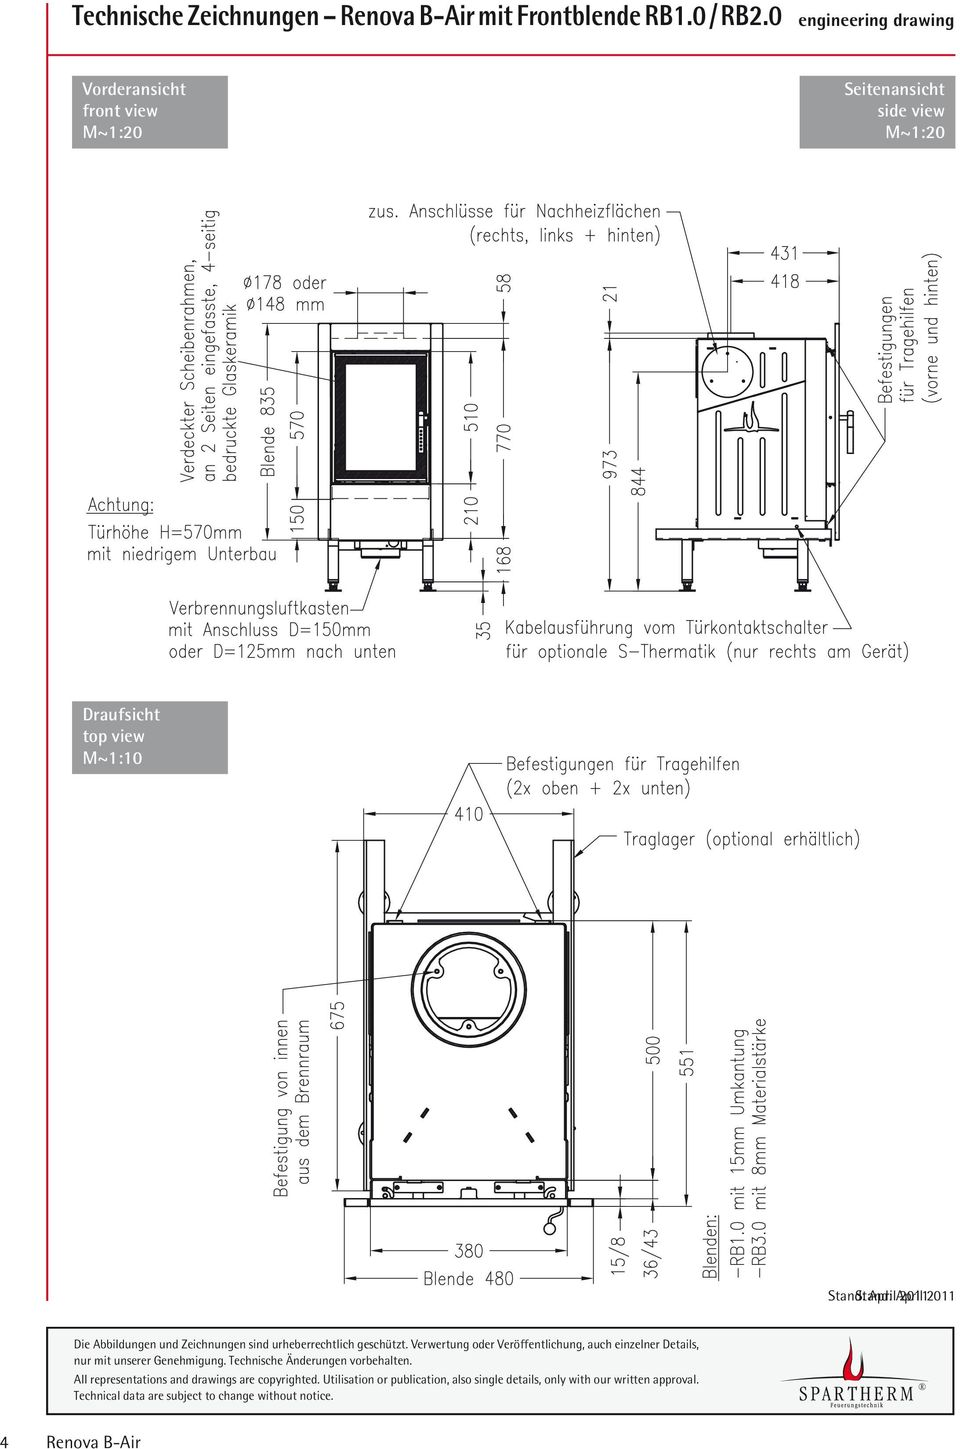 0 engineering drawing Vorderansicht front view